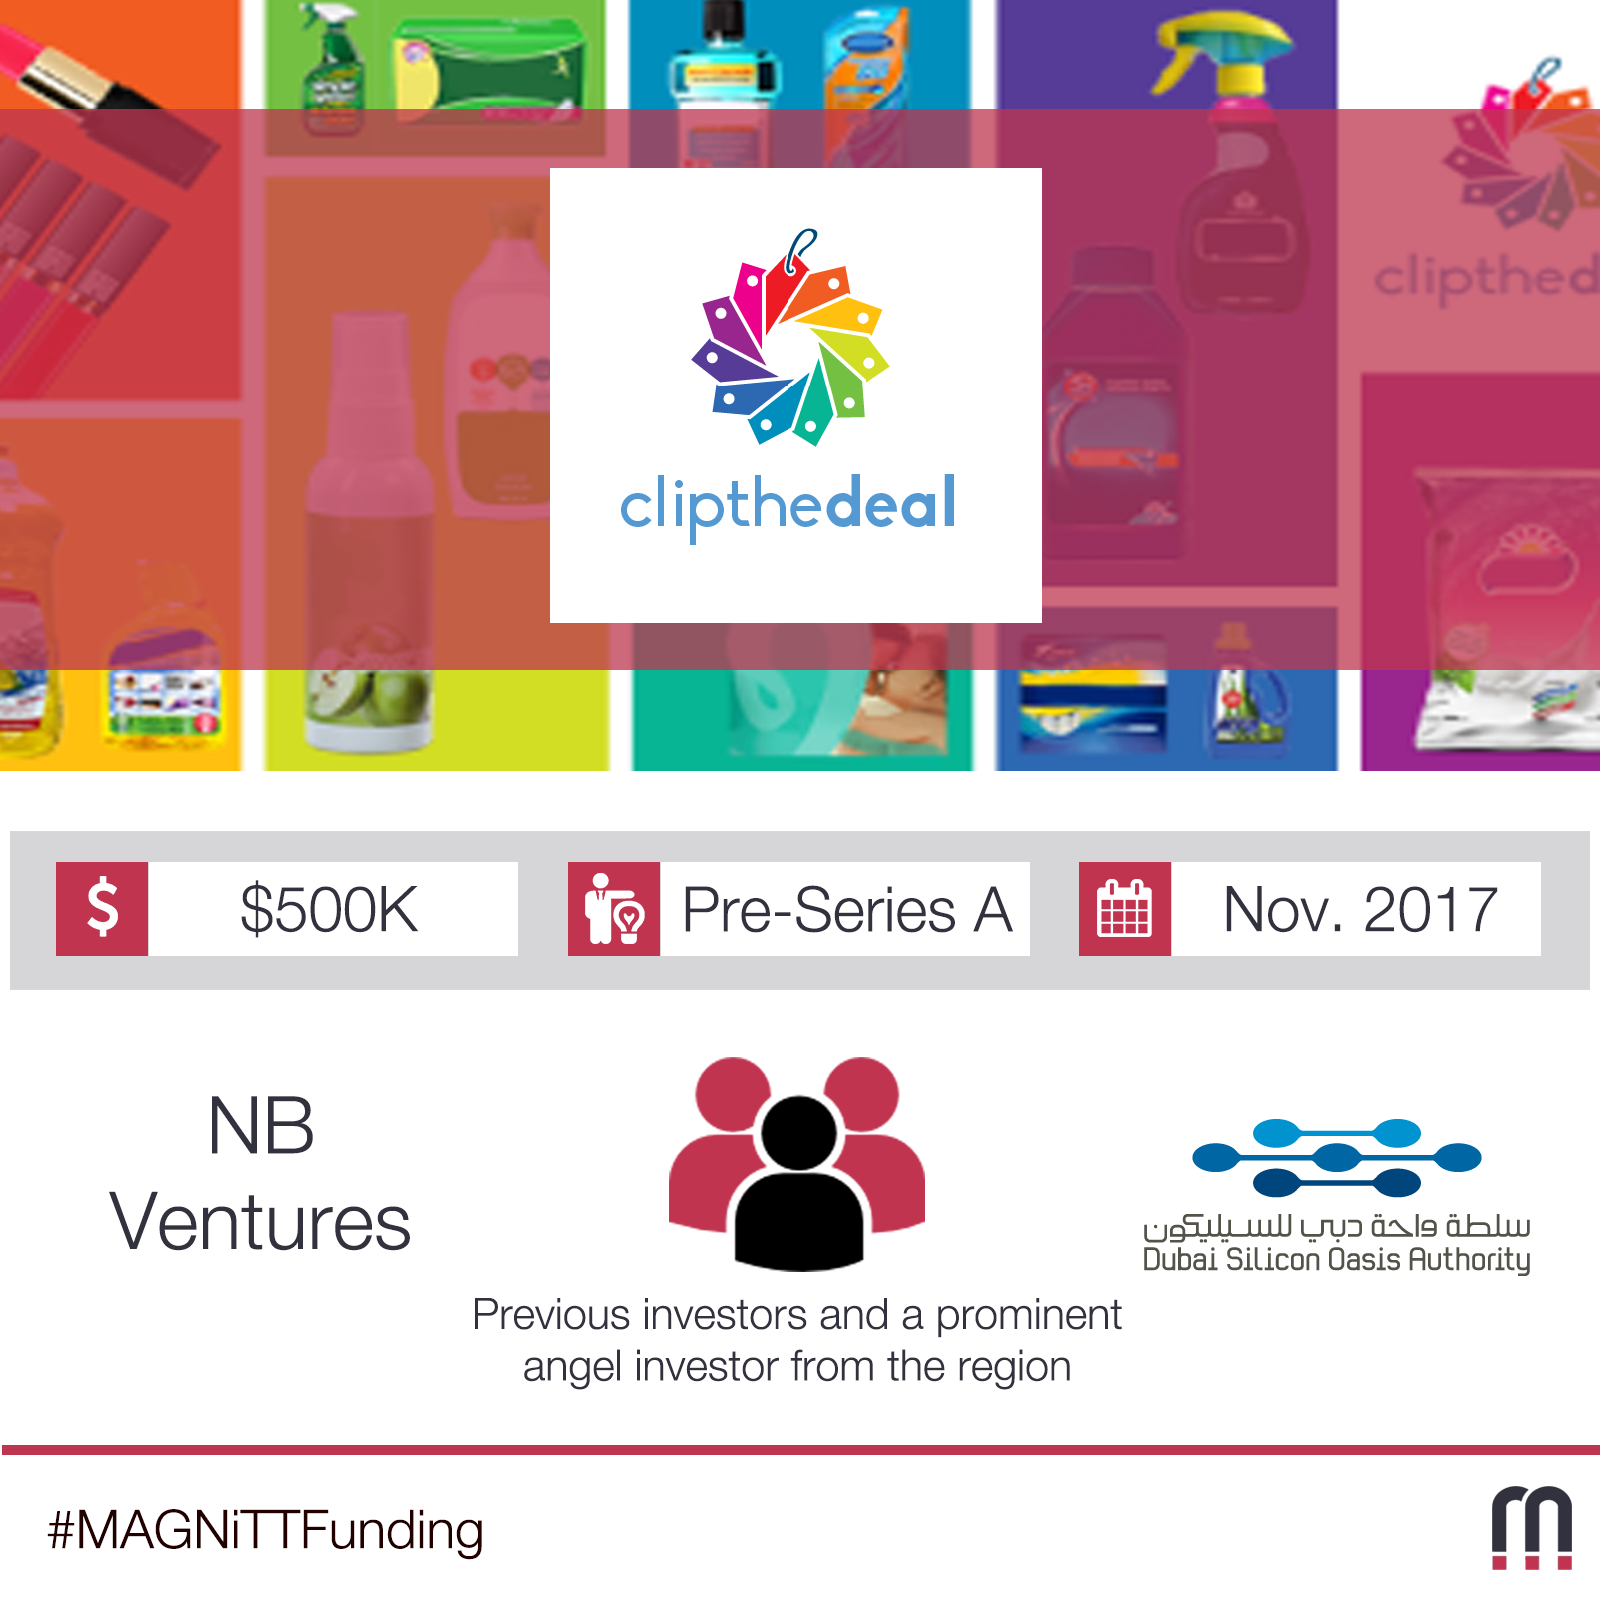 Clip the Deal, a Dubai-based digital grocery coupon platform, announces their second round of funding of $500K